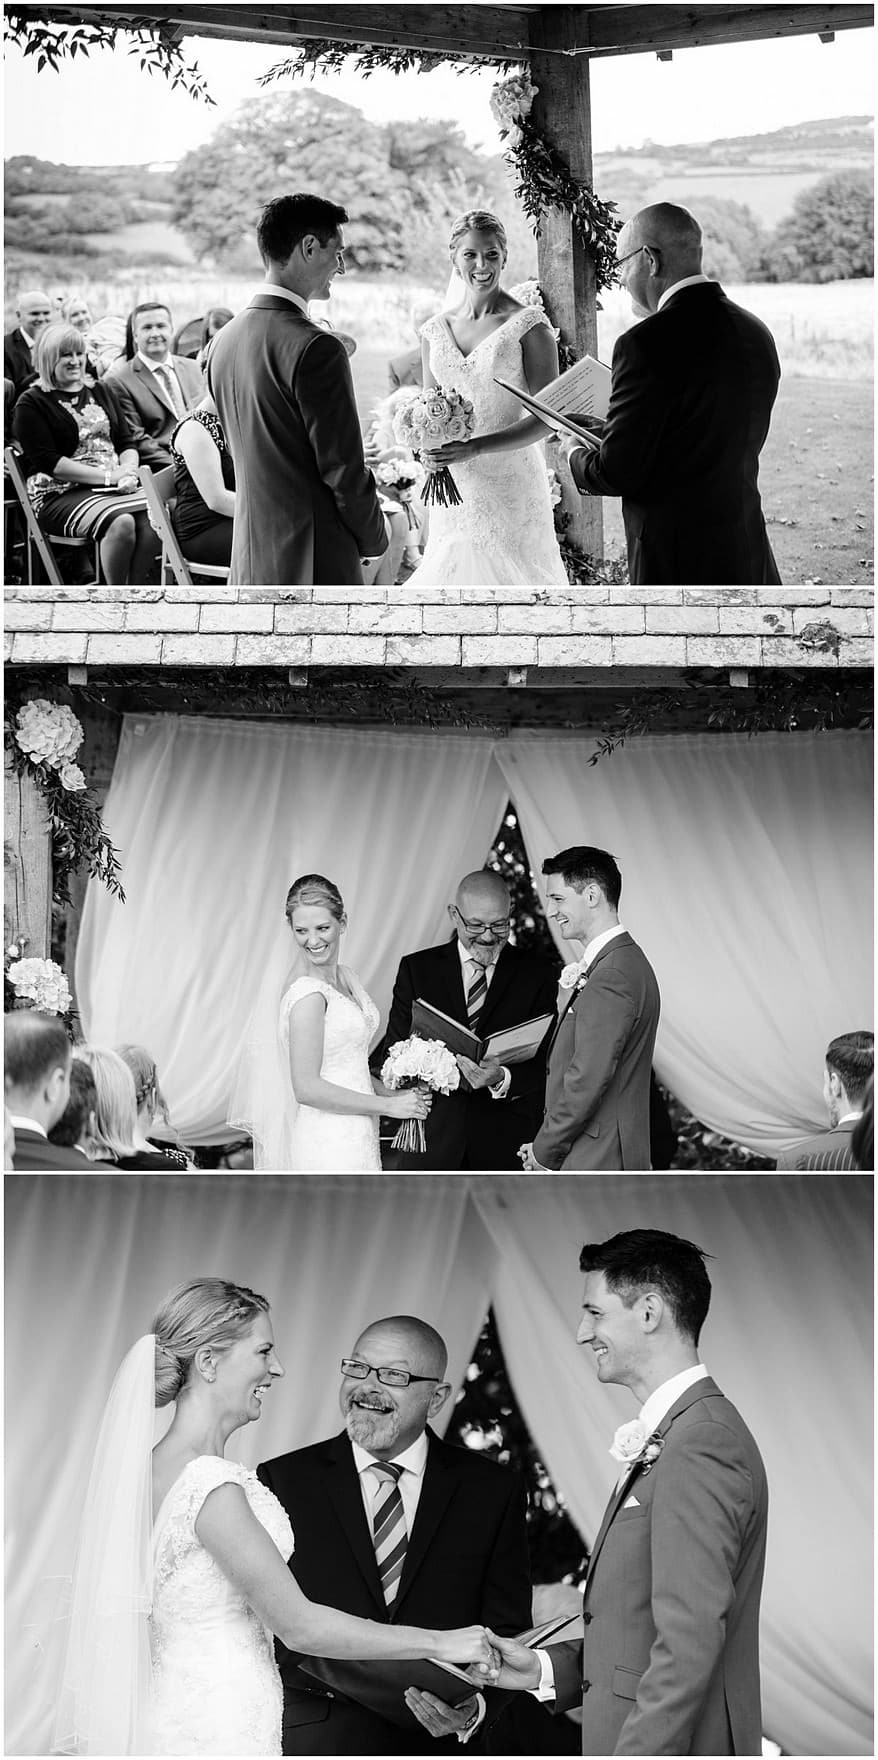 getting married at the arbour at trevenna barns